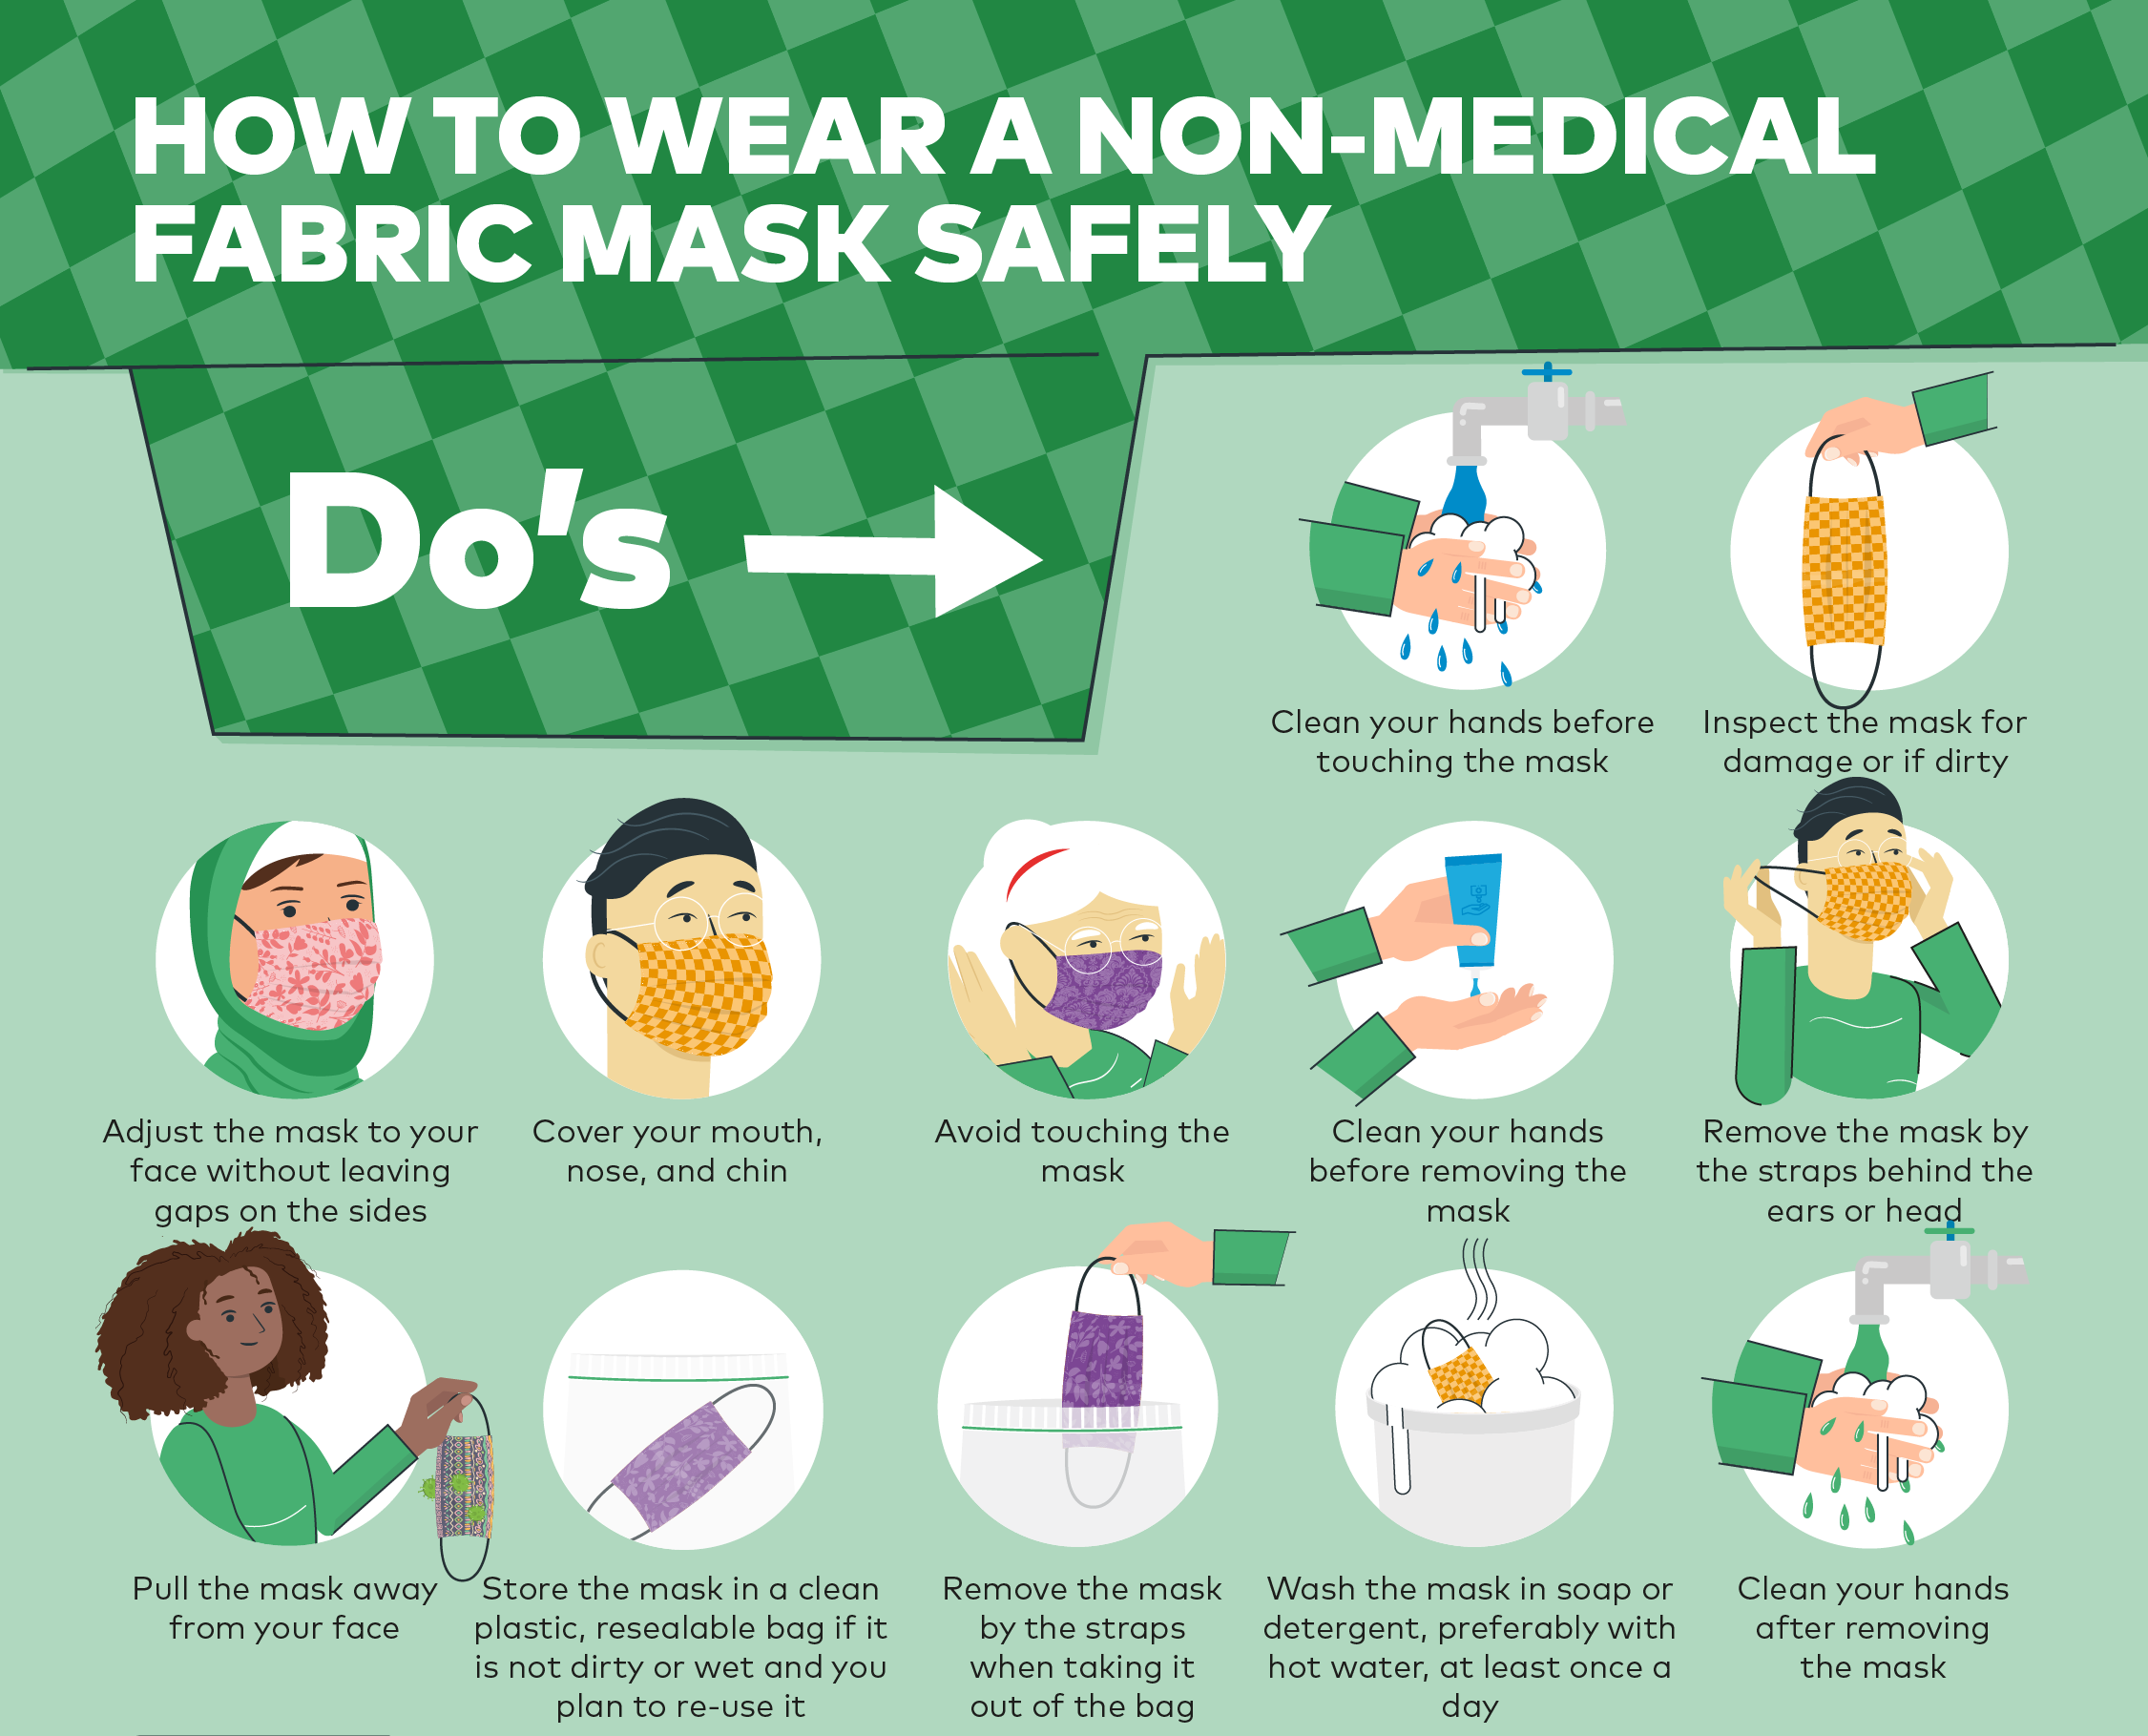 Tips to wear fabric masks safely